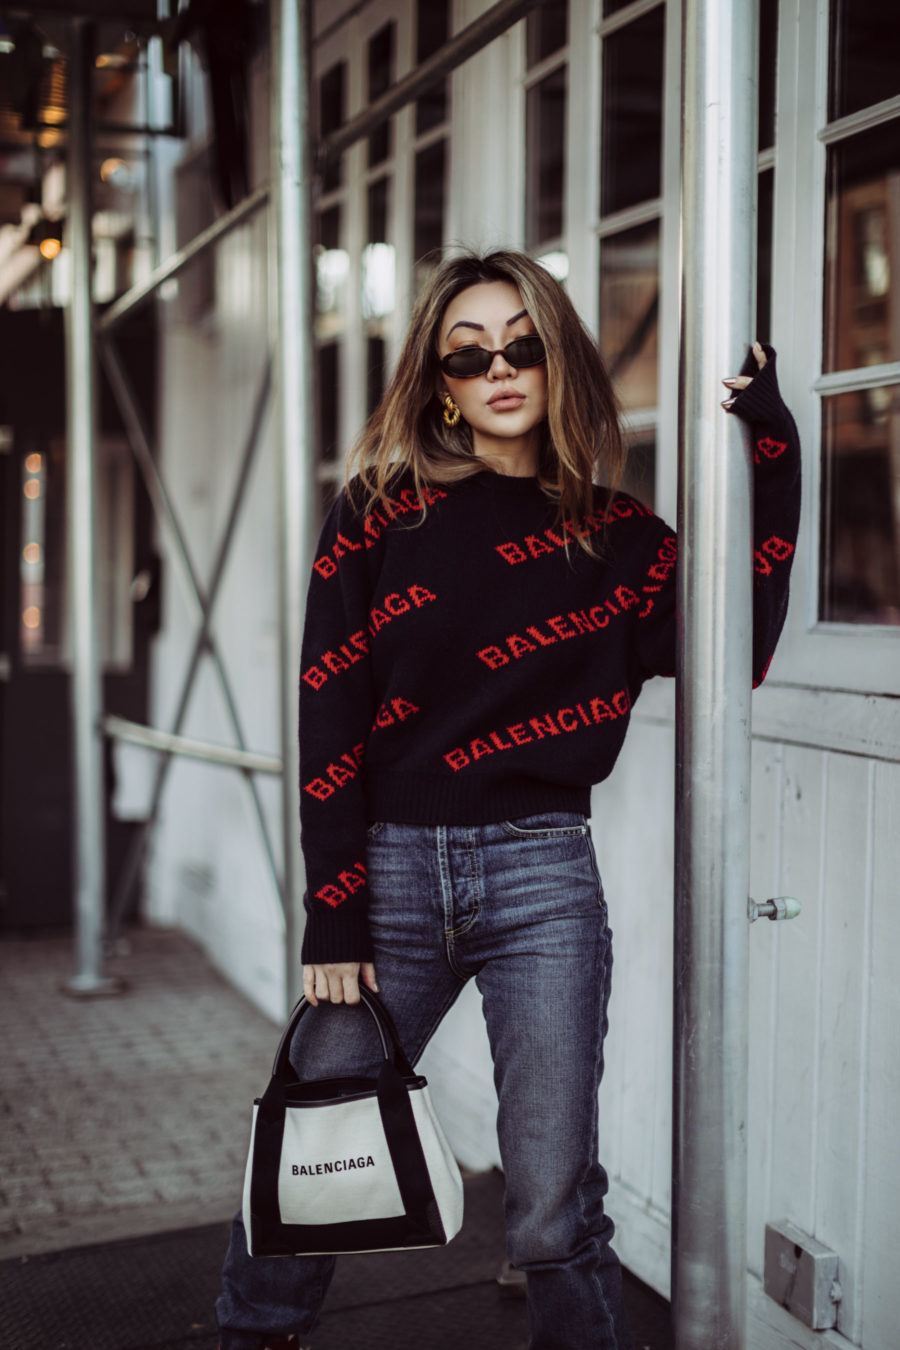 Best outfits for in-between weather - Balenciaga Logo Sweater, Balenciaga Tote, Dakar Boots, sweater and boots outfit // Notjessfashion.com